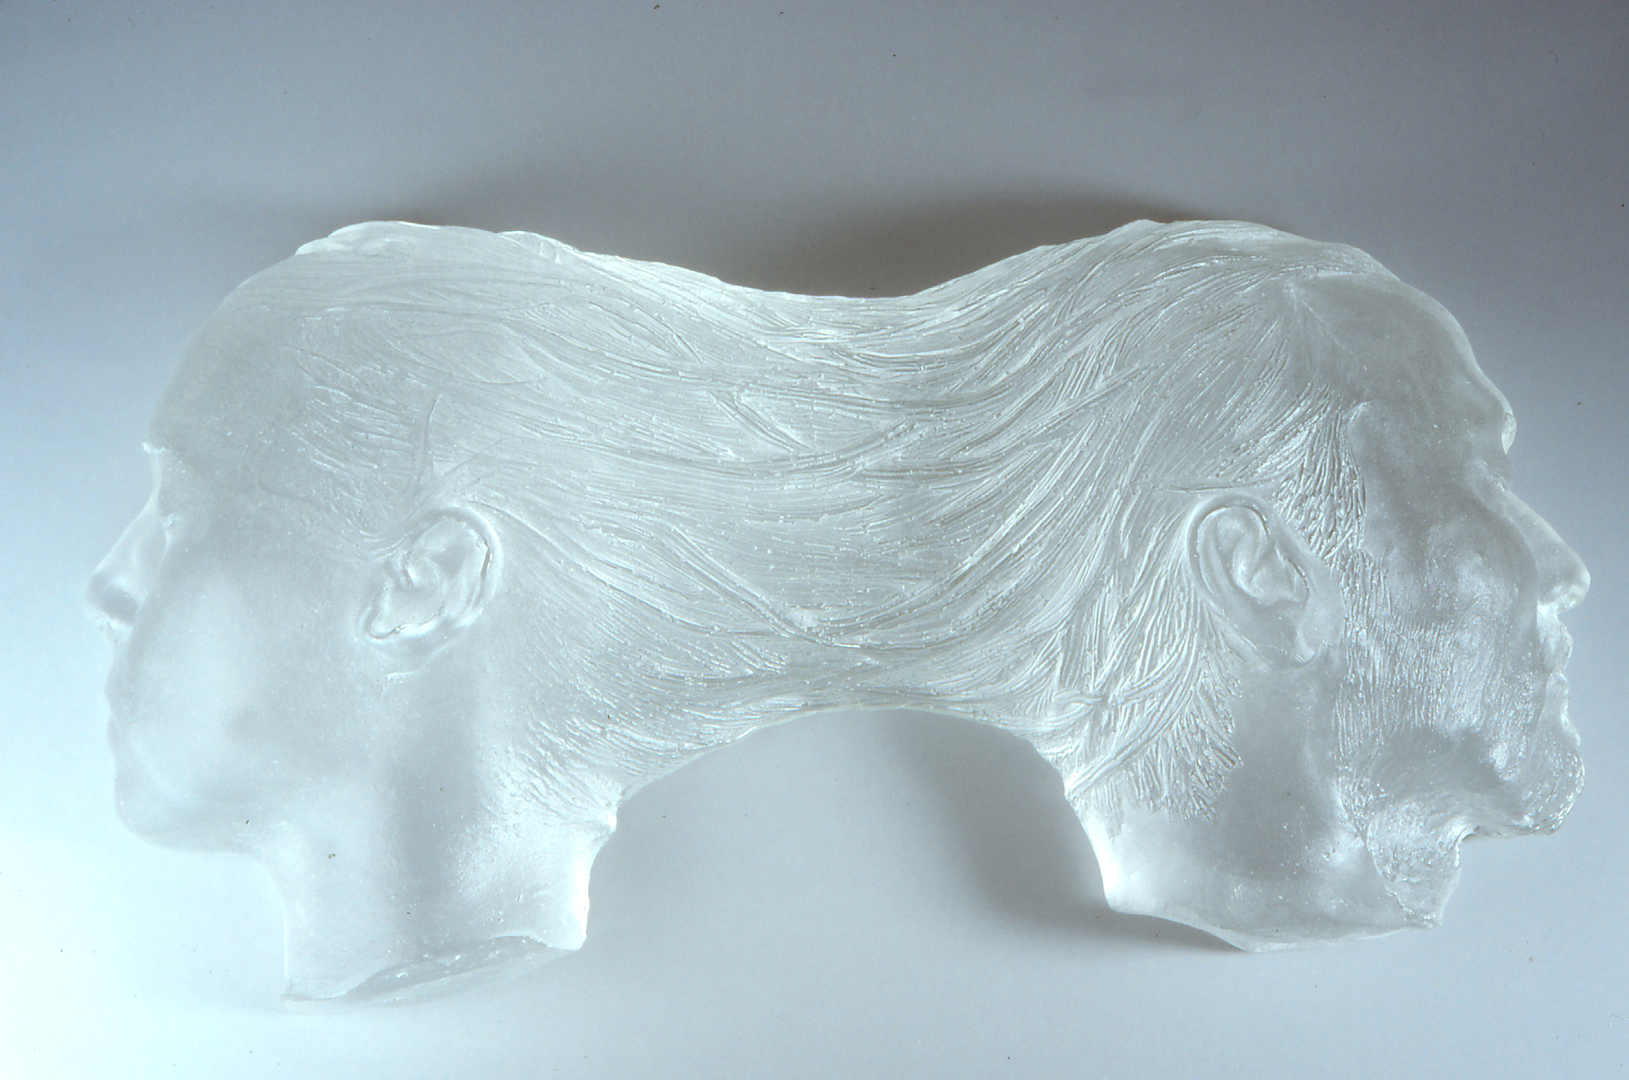 Sculpture of two heads connected at the back by hair flowing between them.